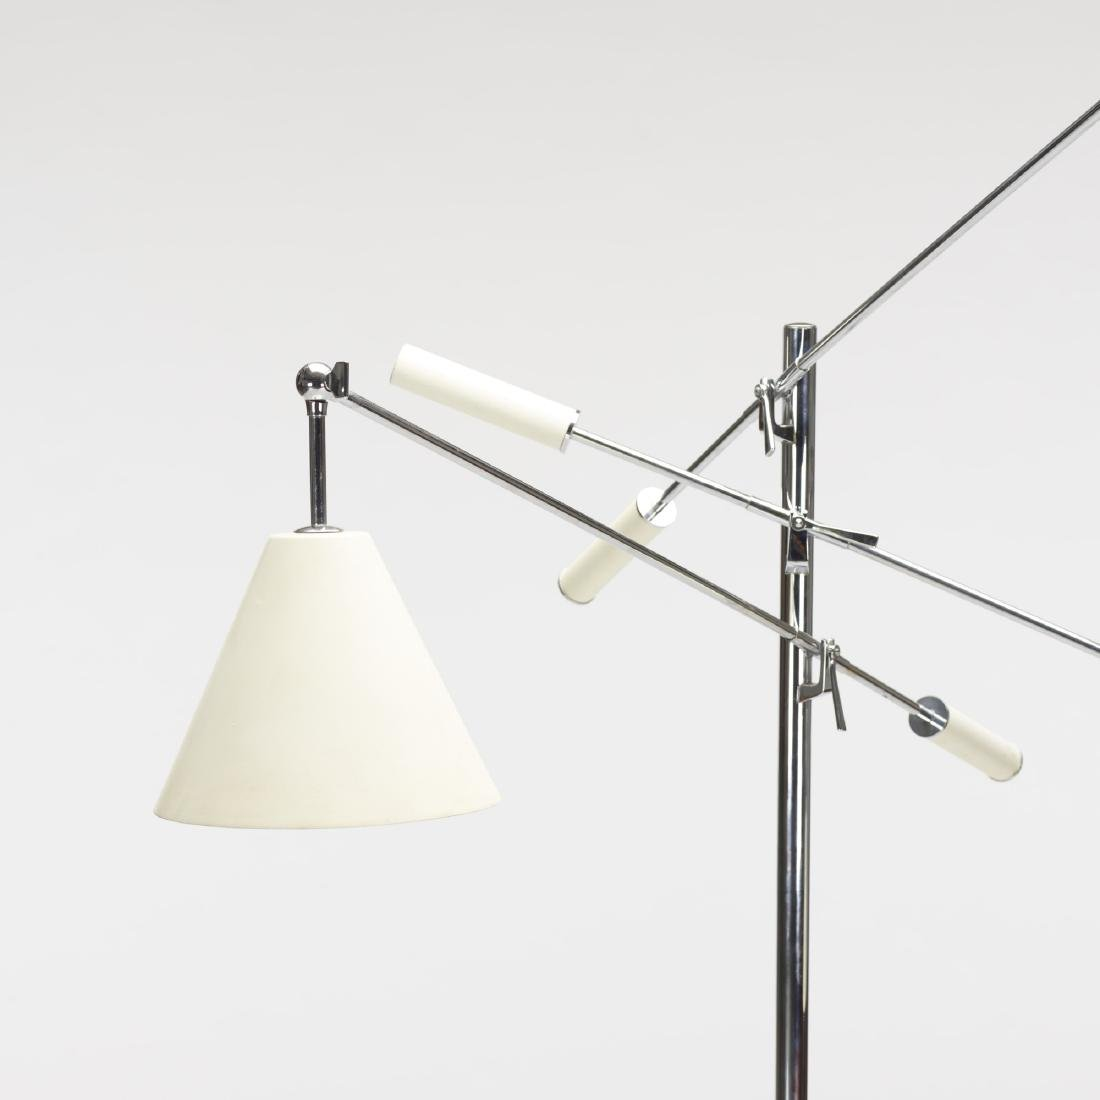 Angelo Lelii, Triennale floor lamp, model 12128 - 2